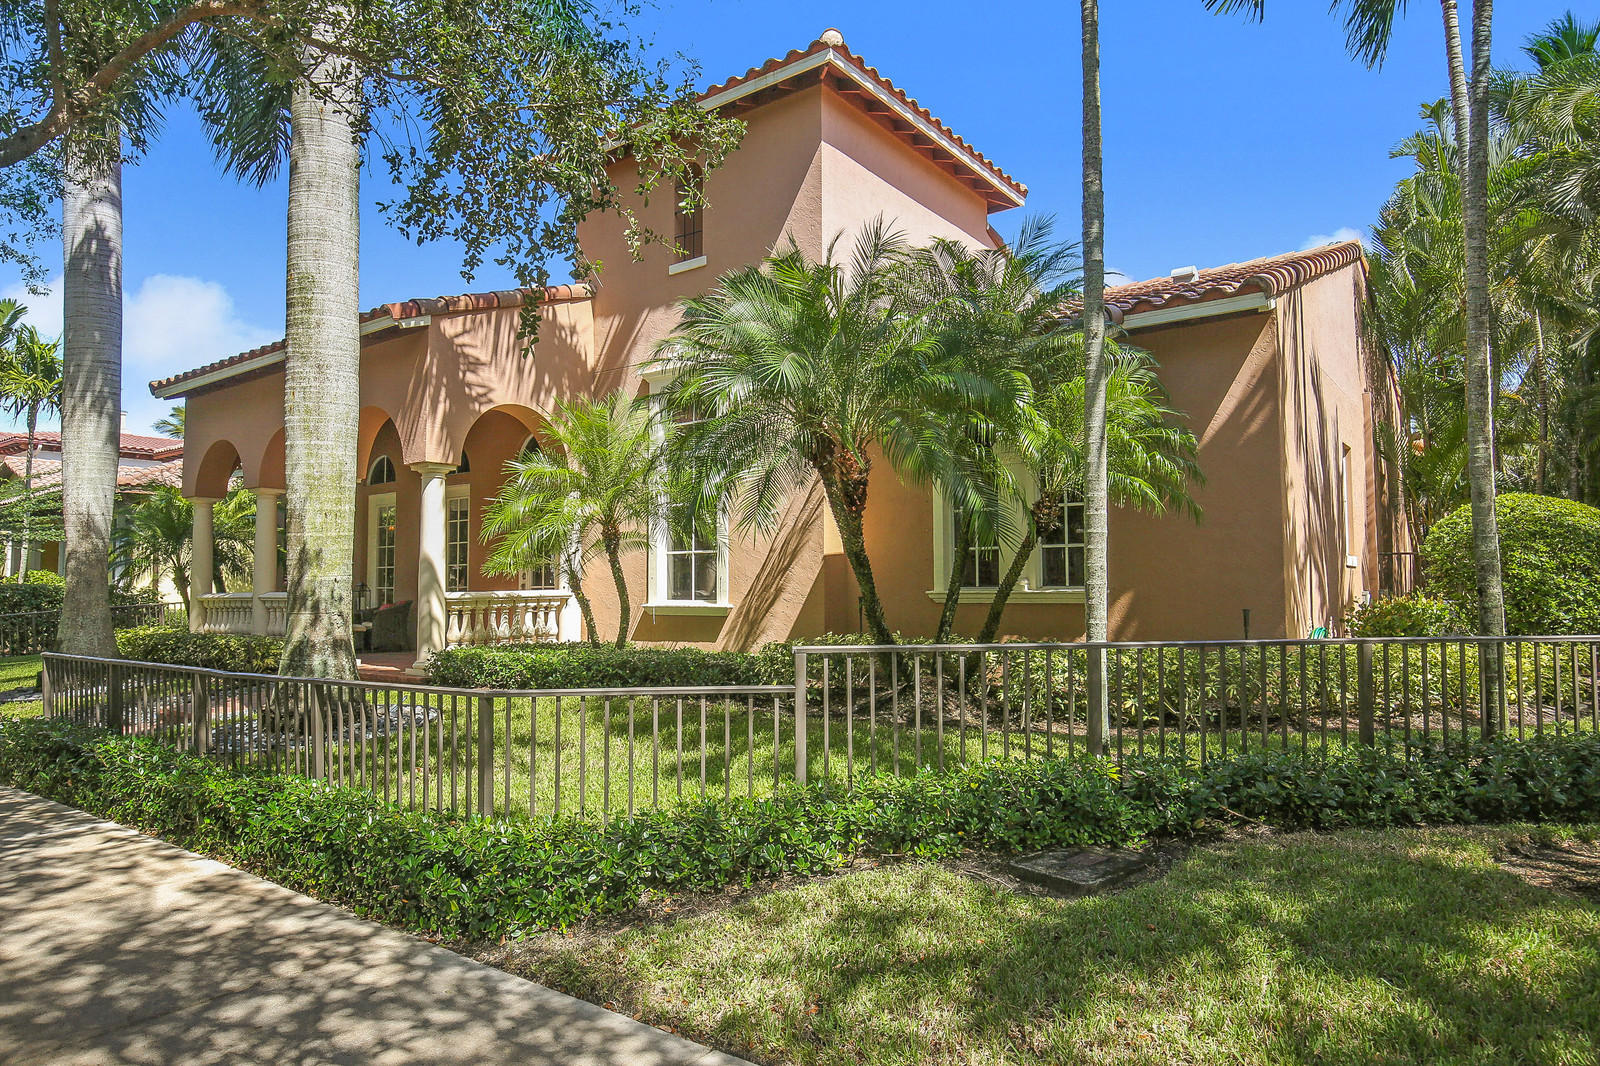 141 Barcelona Drive, Jupiter, Florida 33458, 5 Bedrooms Bedrooms, ,4.1 BathroomsBathrooms,A,Single family,Barcelona,RX-10470791